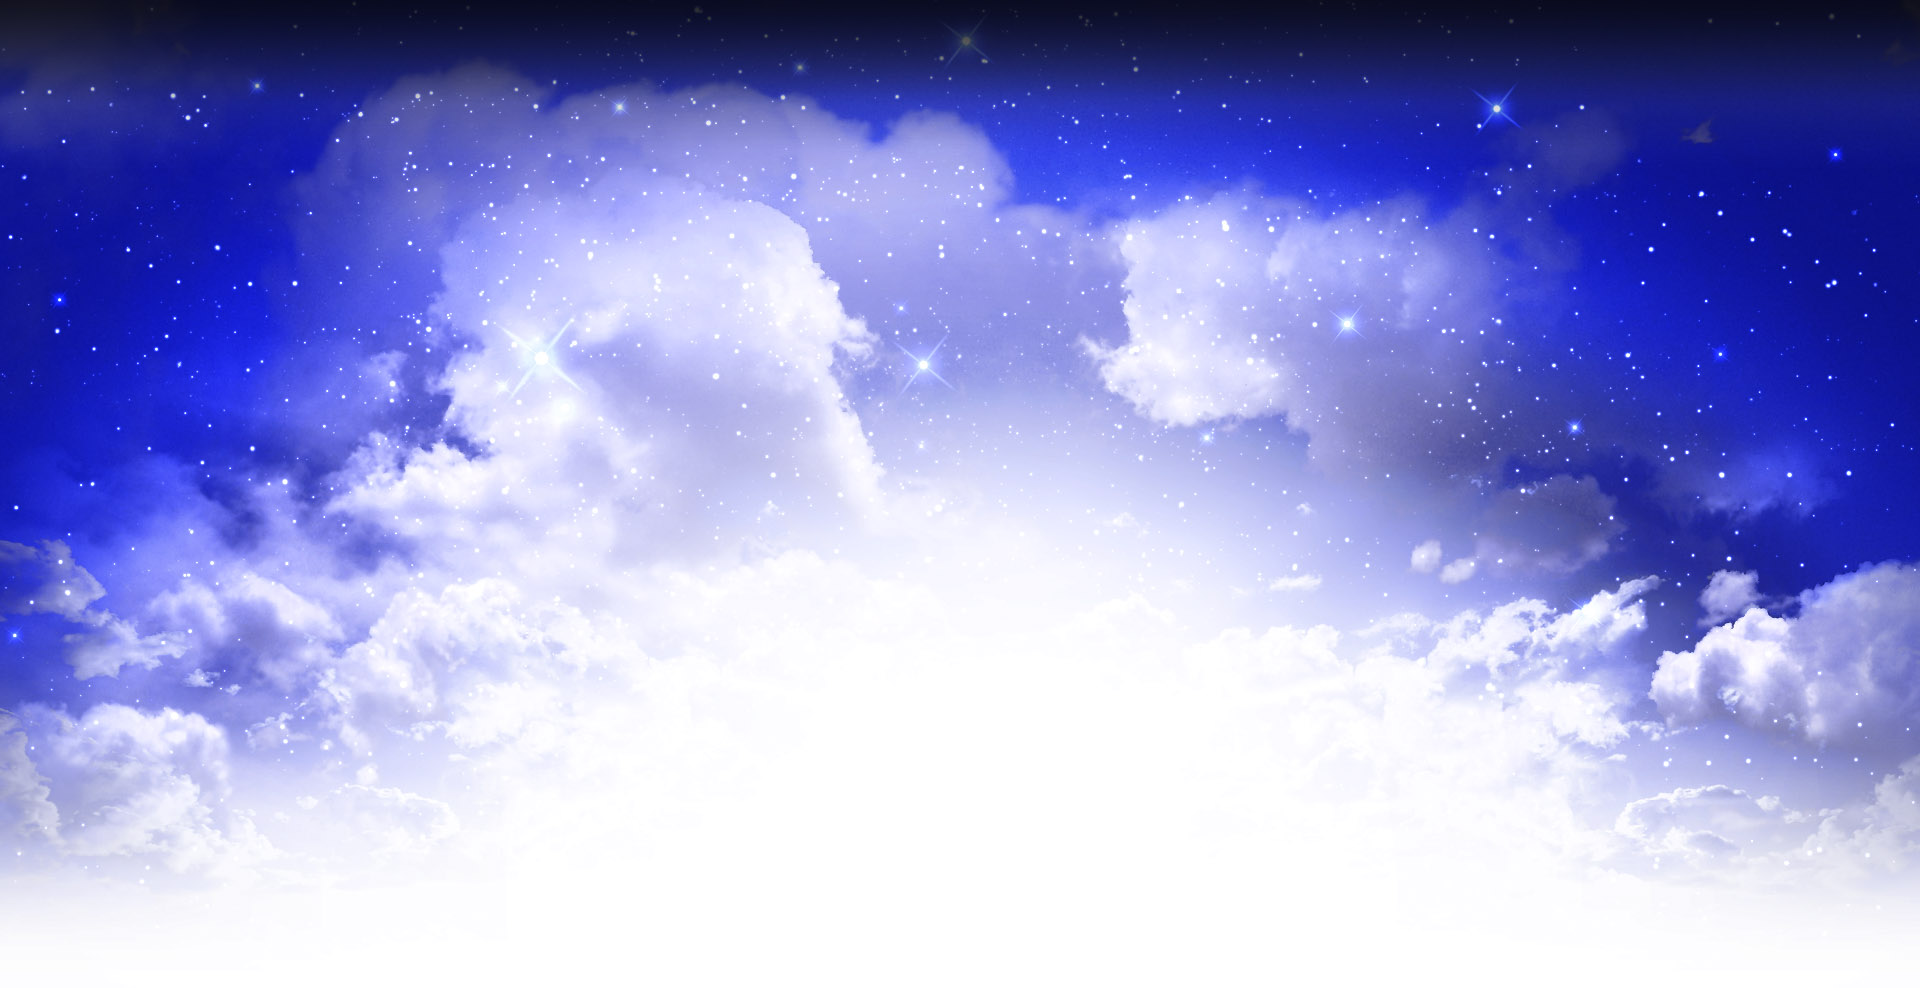 background_header_starryclouds